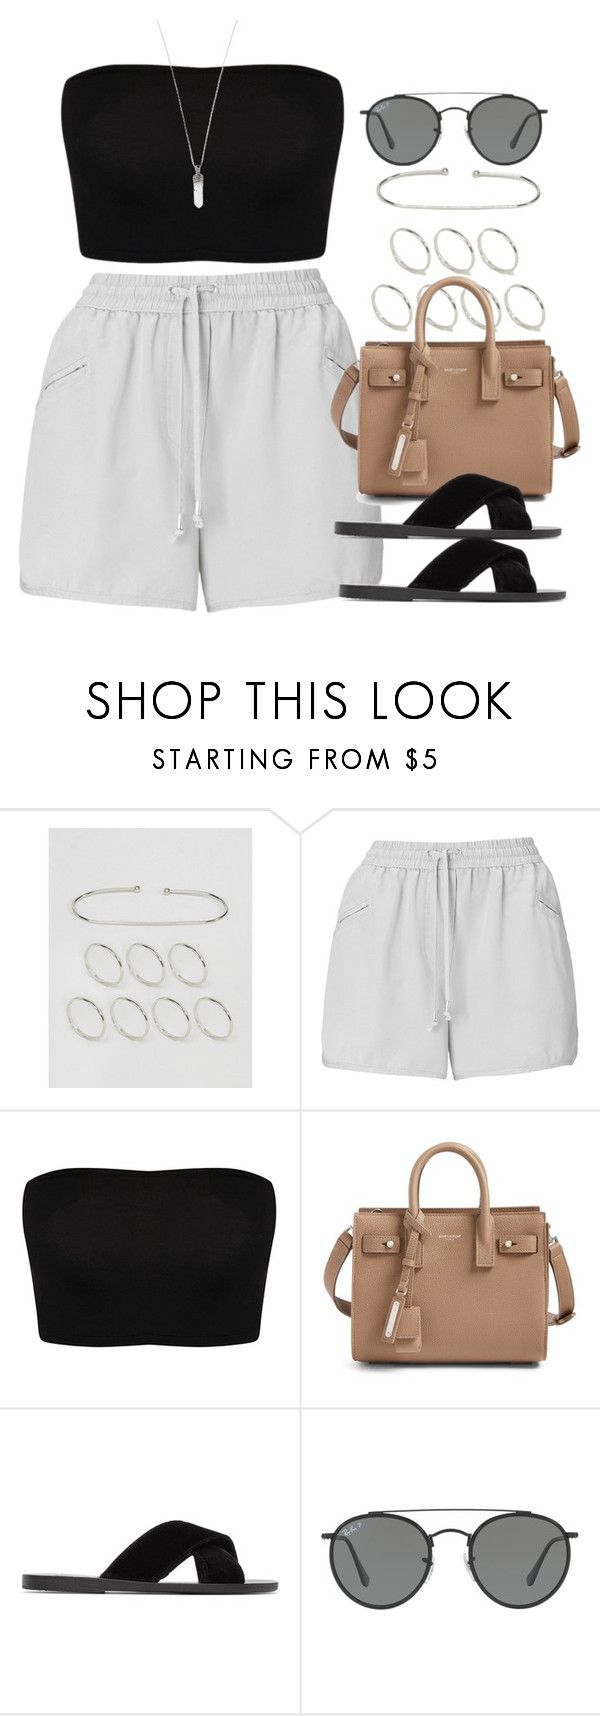 """""""Sin título #13009"""" by vany-alvarado ❤ liked on Polyvore featuring ASOS, Whistles, Yves Saint Laurent, Ancient Greek Sandals, Ray-Ban and Marc Jacobs"""